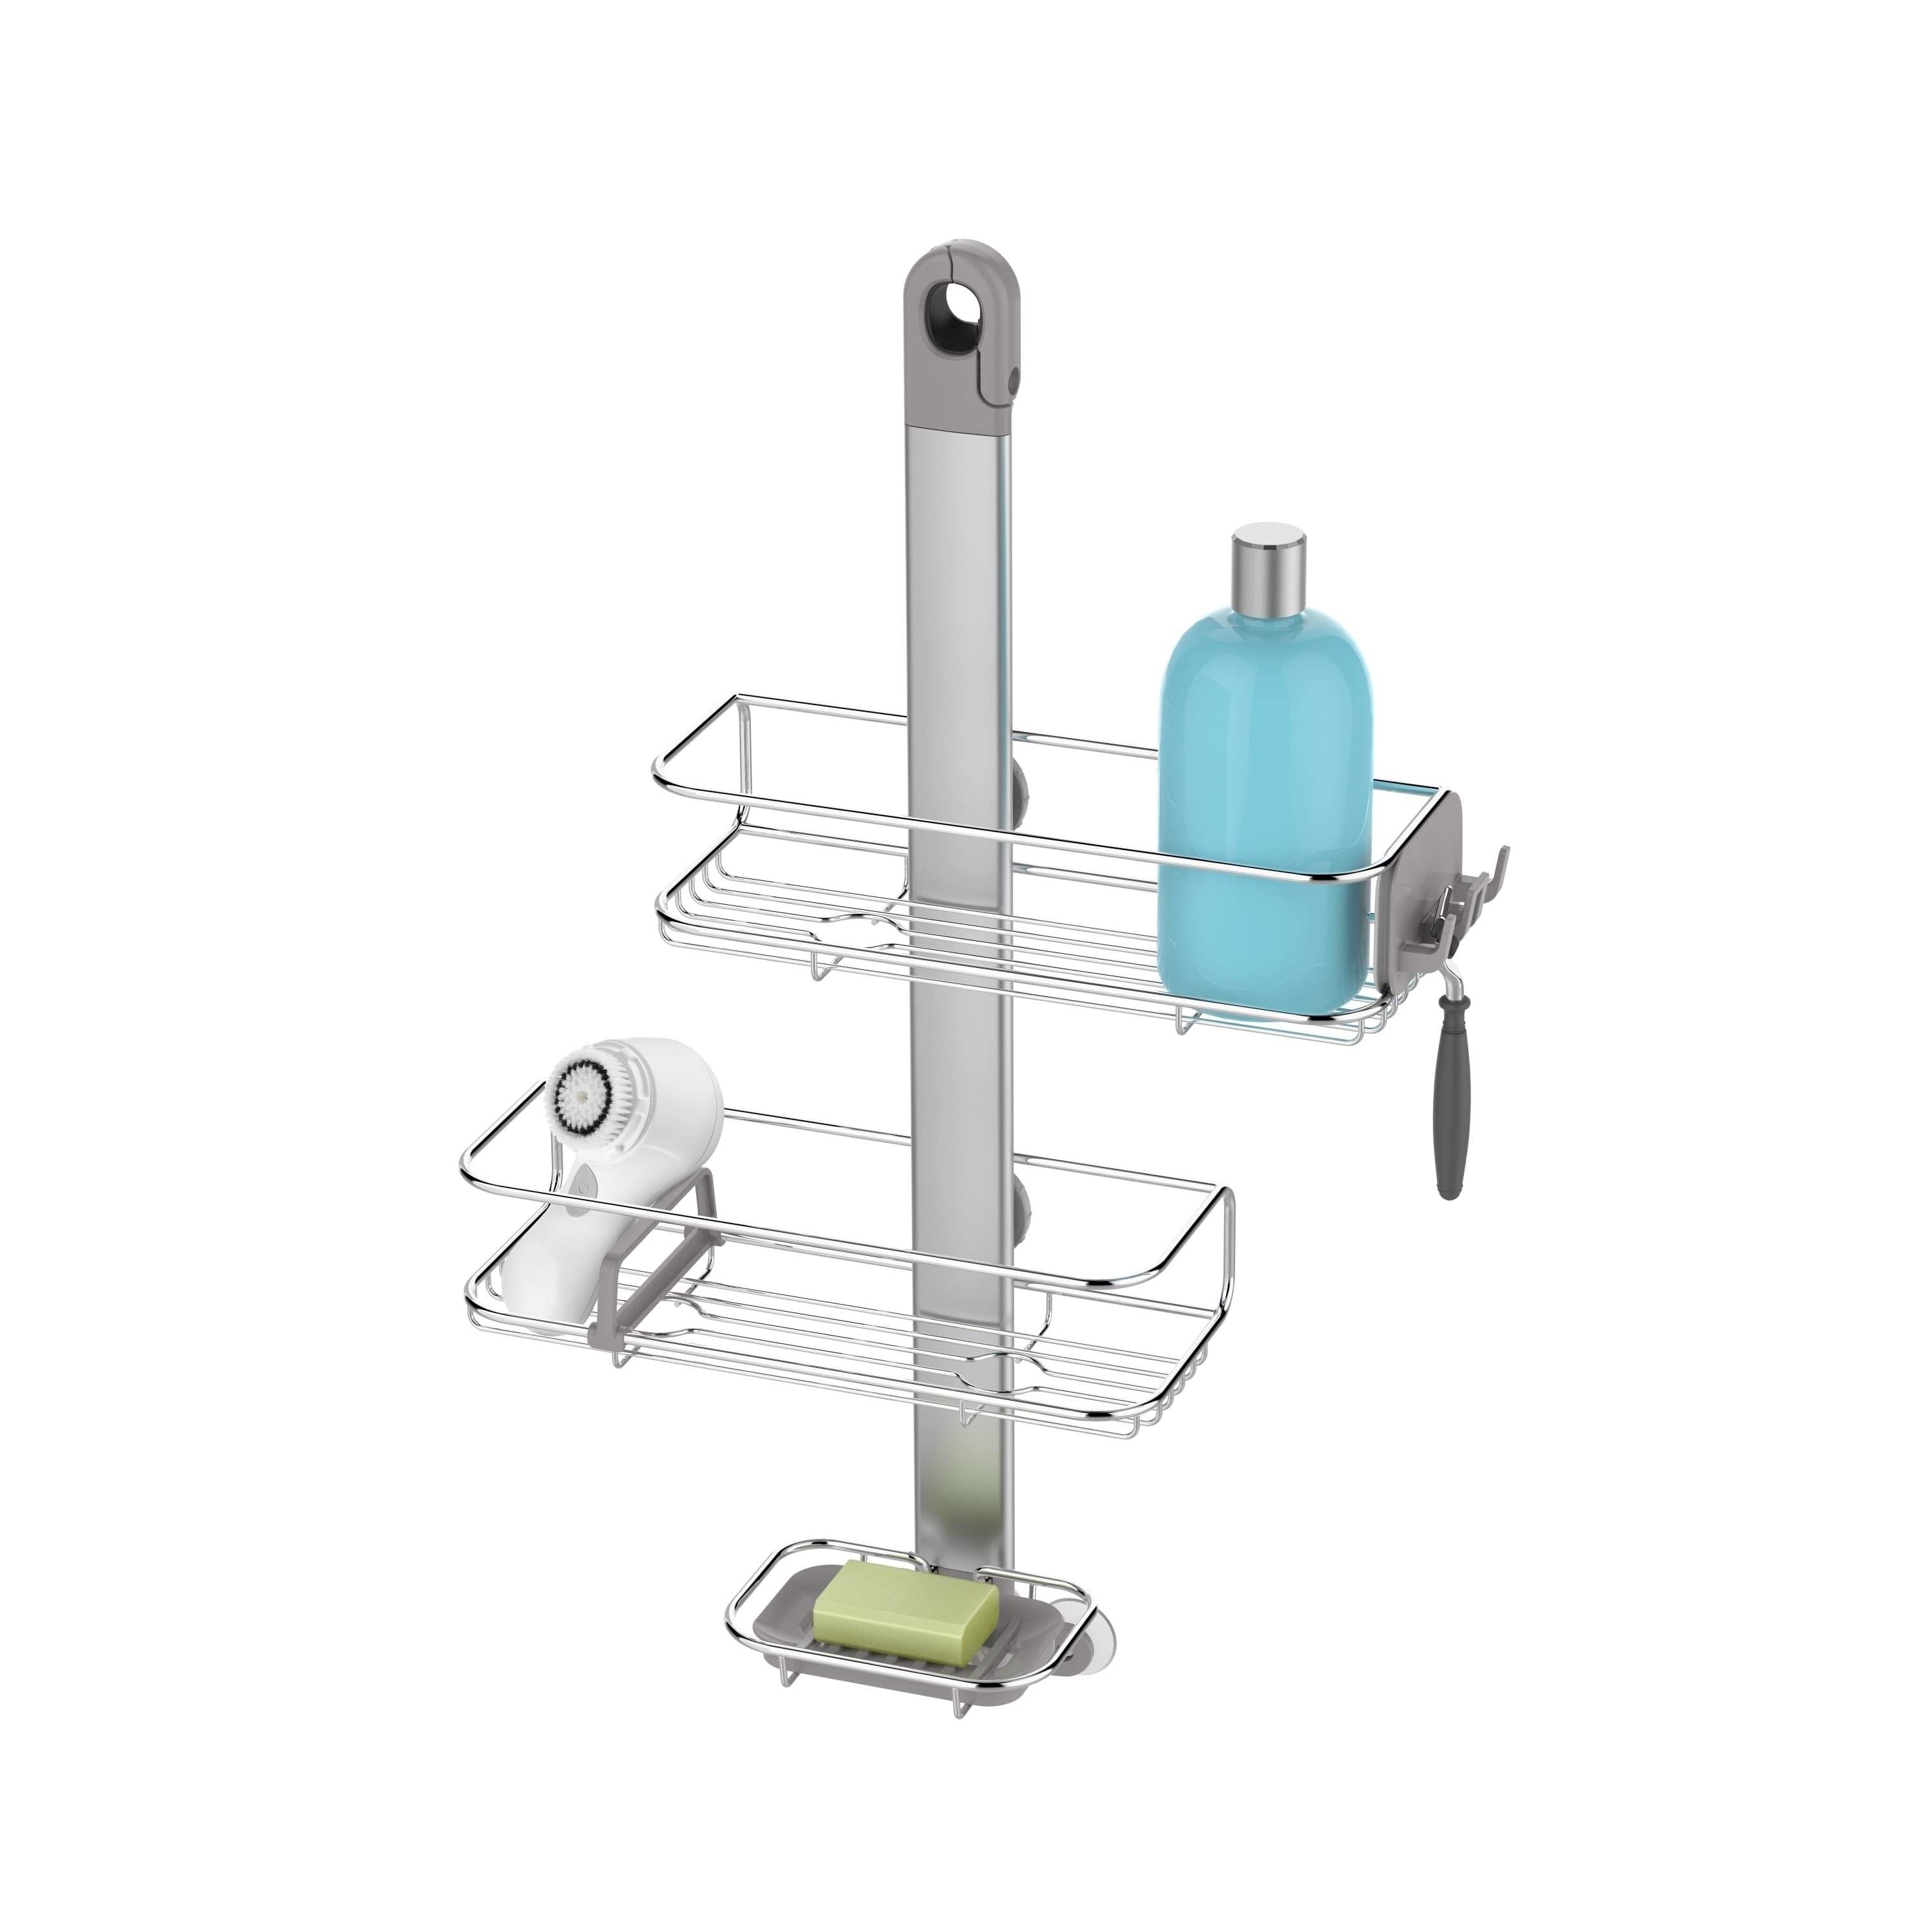 simplehuman Adjustable Shower Caddy Stainless Steel/ Anod...